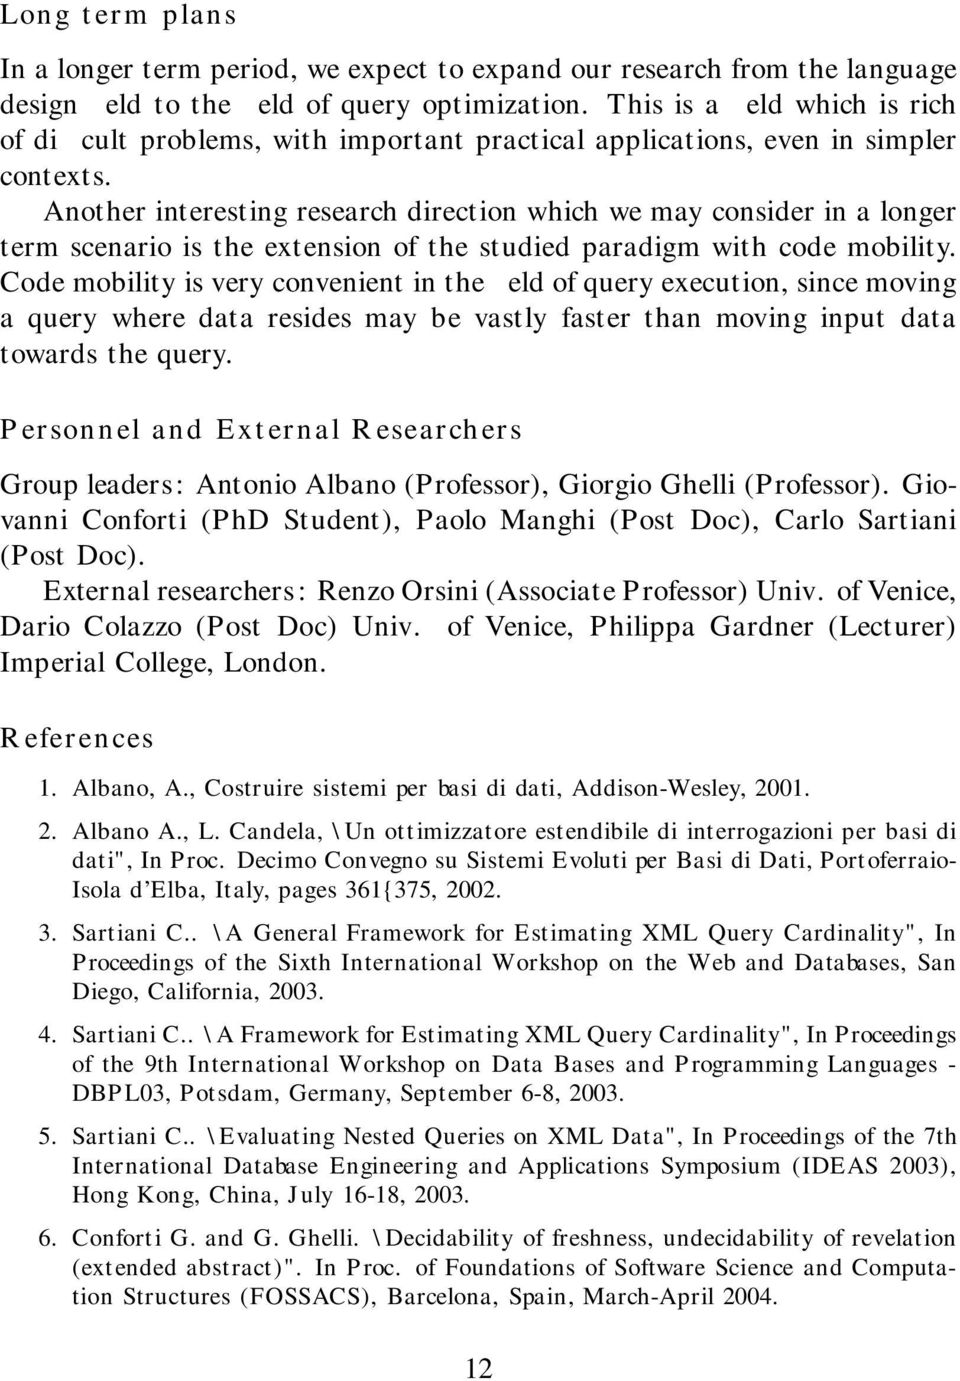 Another interesting research direction which we may consider in a longer term scenario is the extension of the studied paradigm with code mobility.